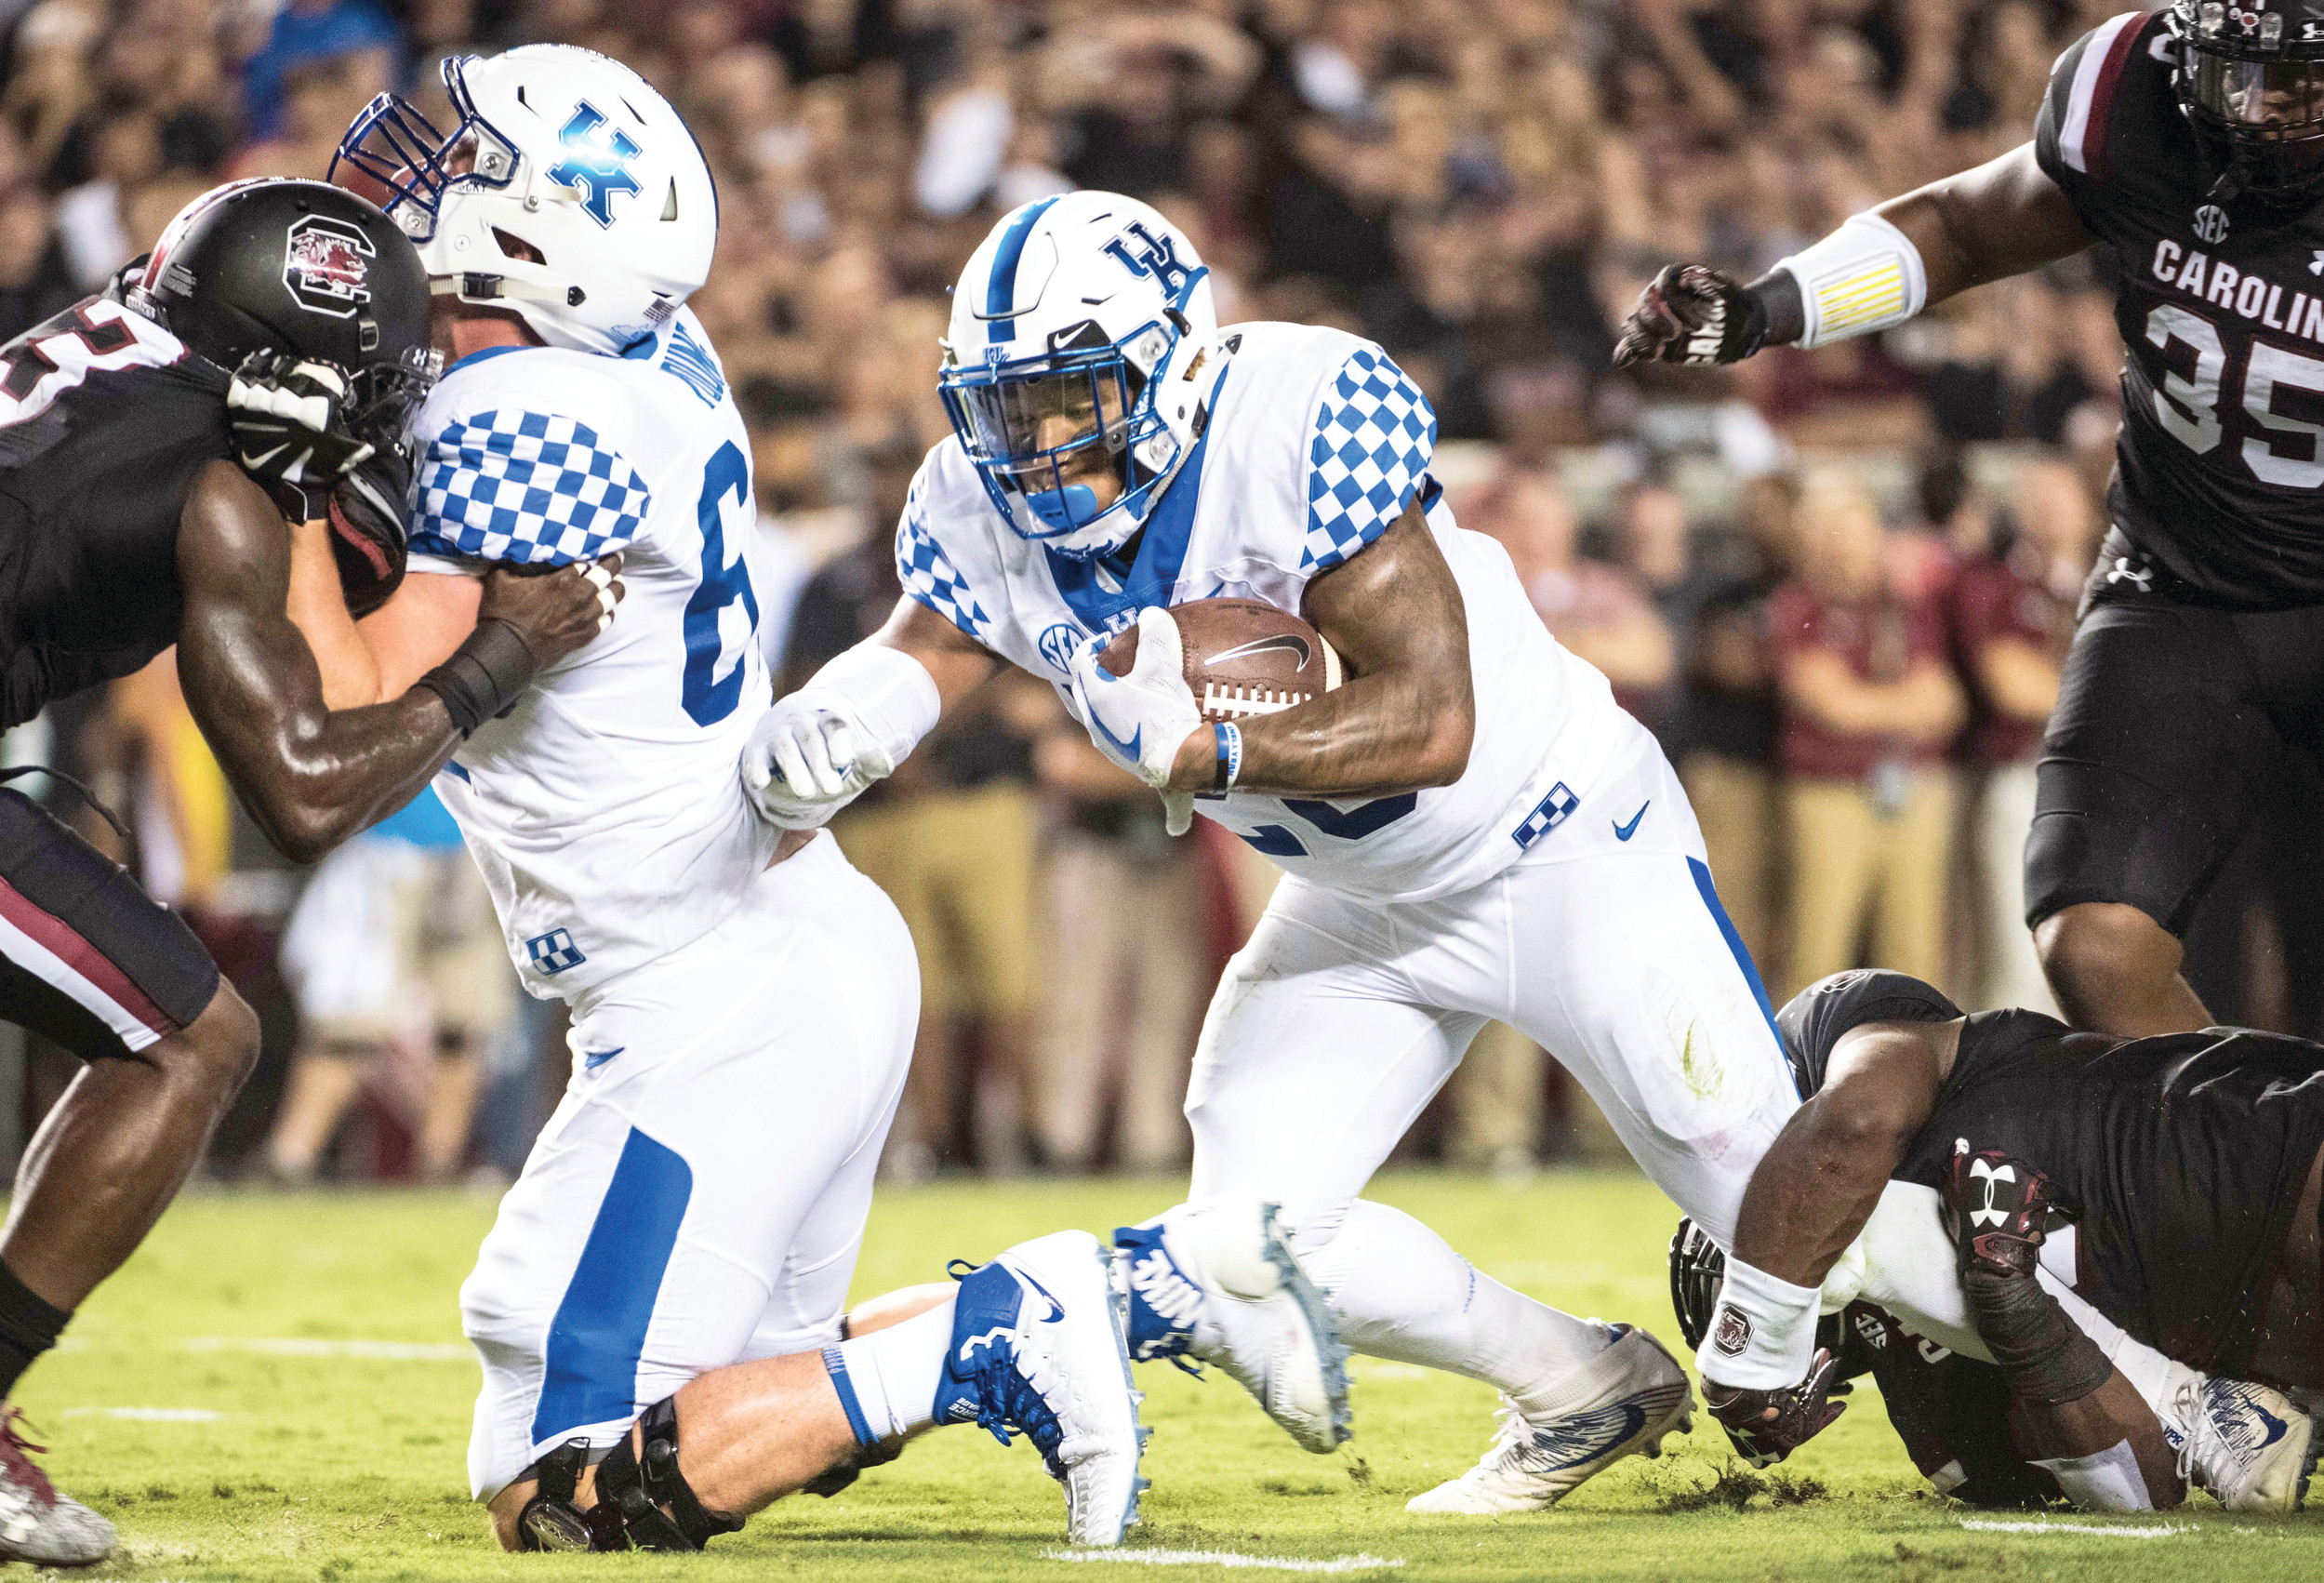 Kentucky running back Benny Snell Jr., center, fights through South Carolina defenders for more yardage during the Wildcats' 23-13 victory on Saturday in Columbia at Williams-Brice Stadium.